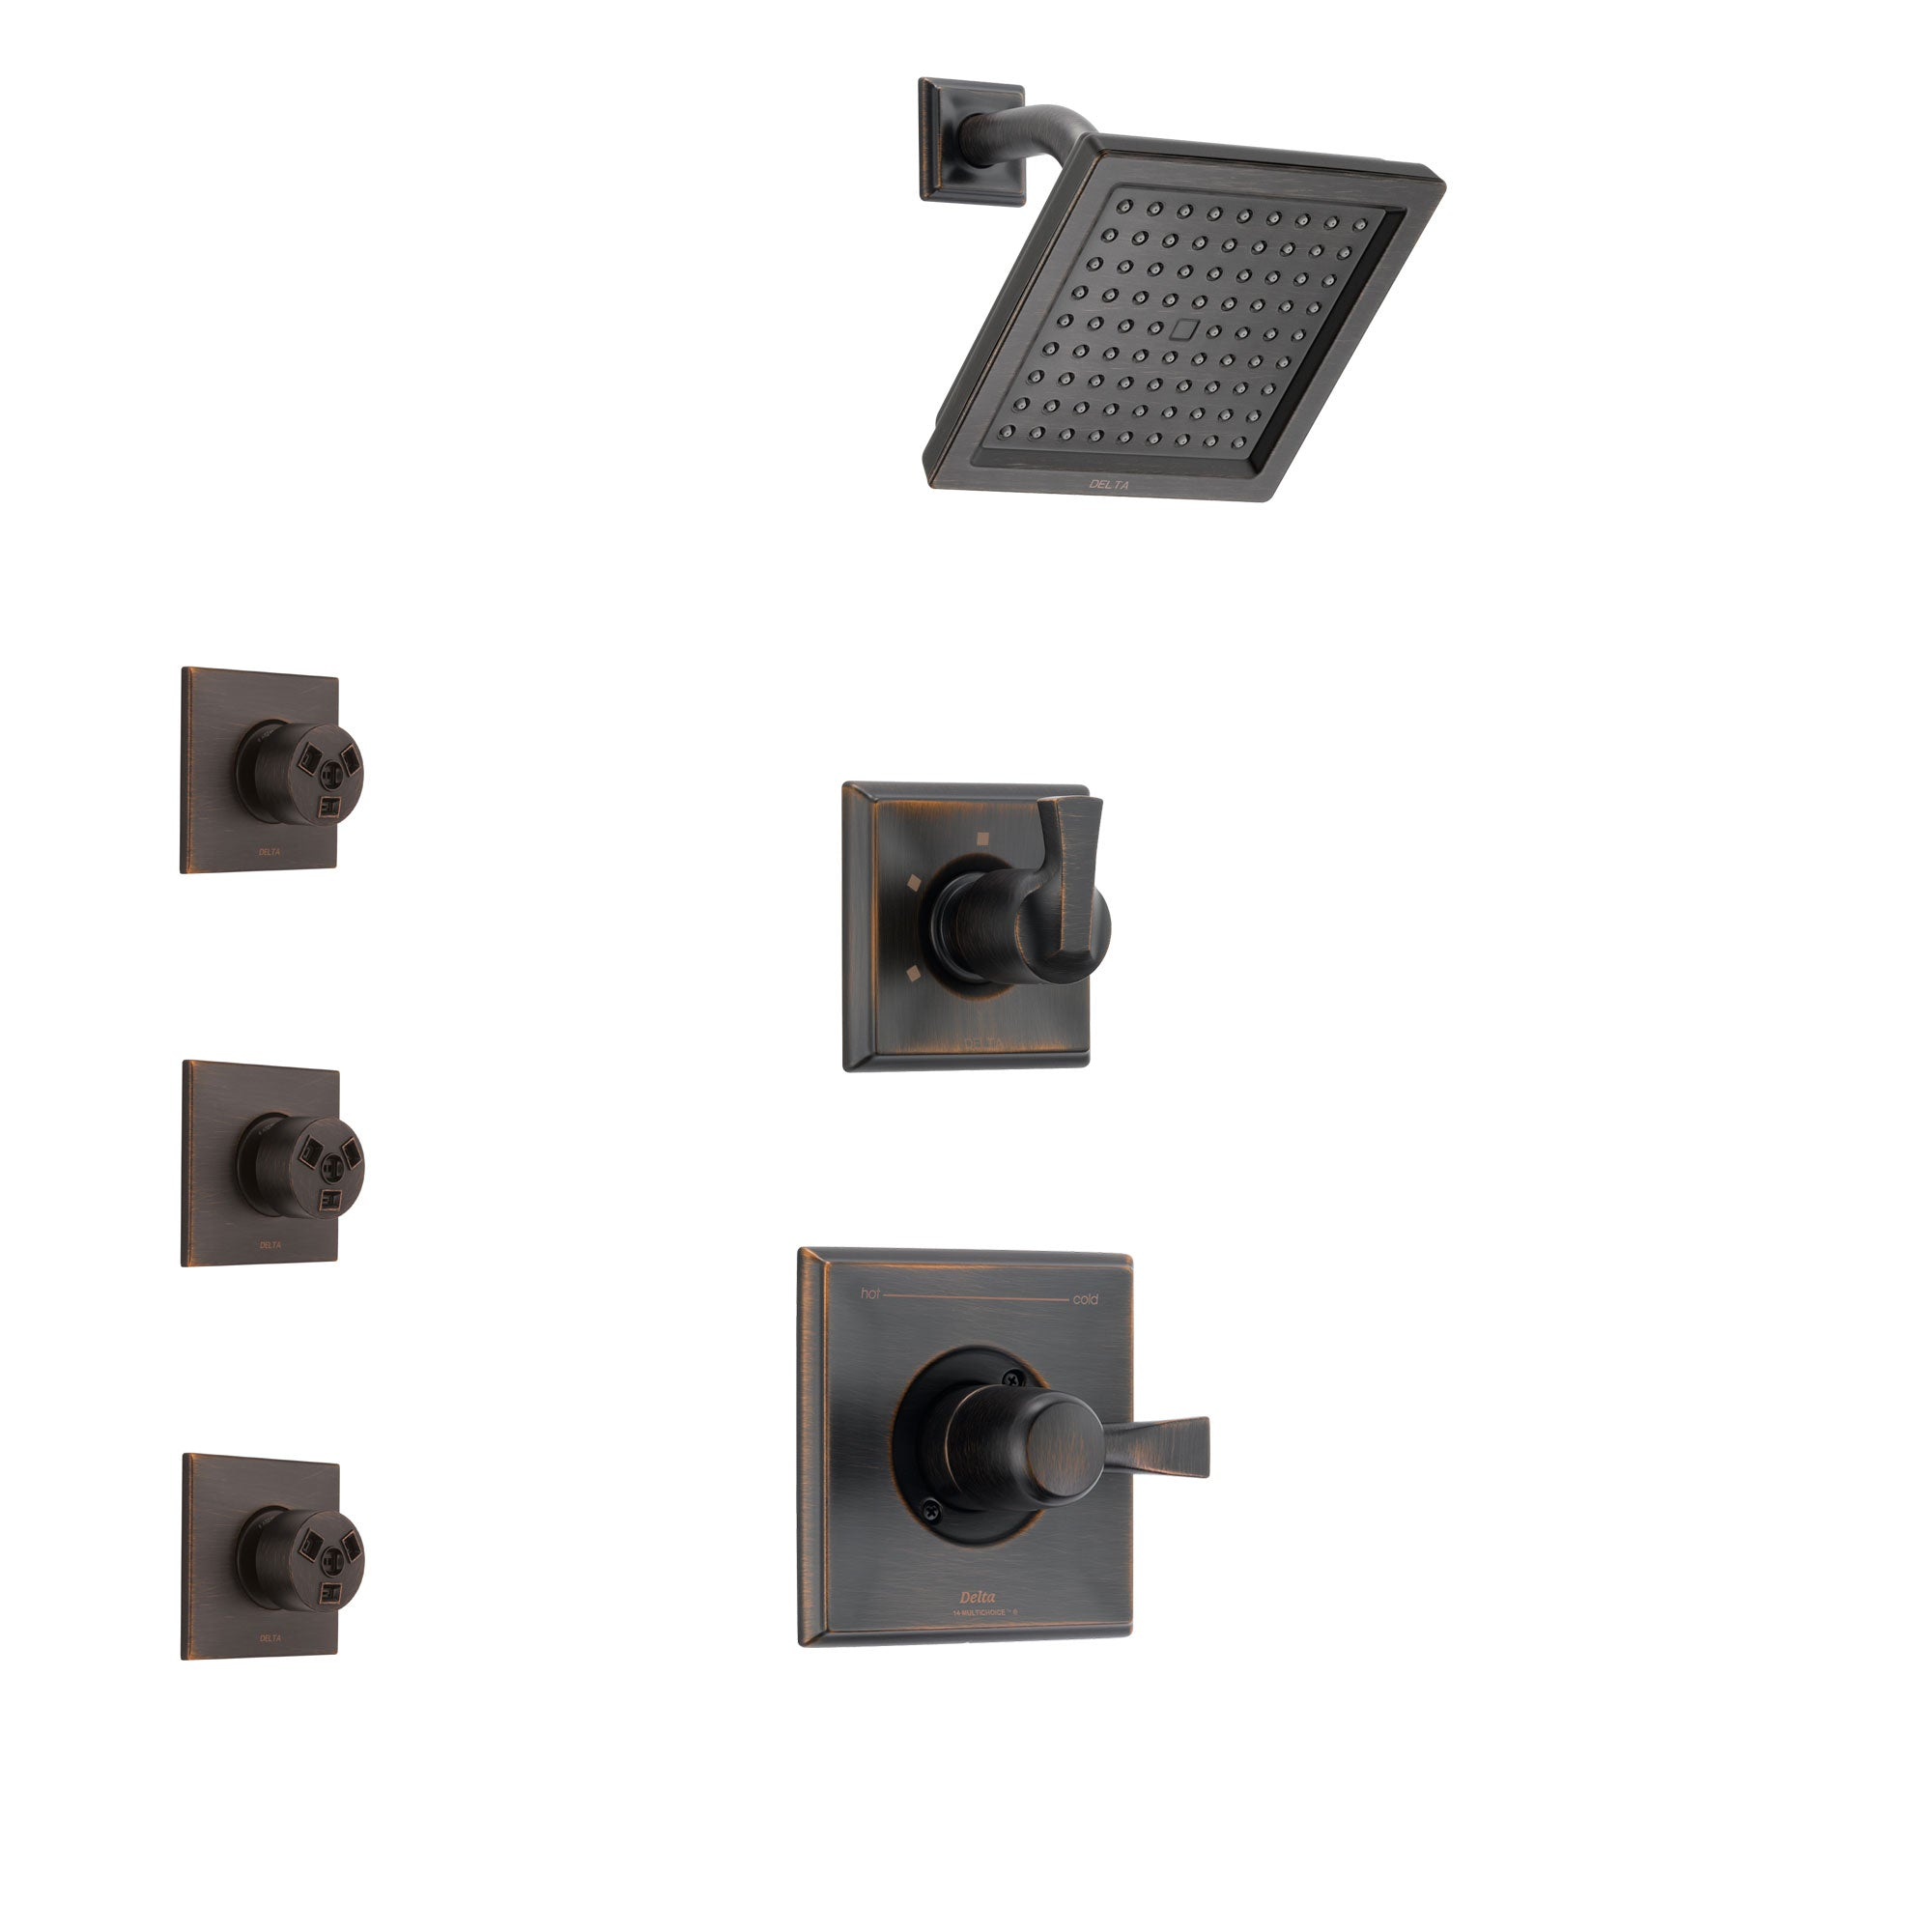 Delta Dryden Venetian Bronze Finish Shower System with Control Handle, 3-Setting Diverter, Showerhead, and 3 Body Sprays SS142511RB1